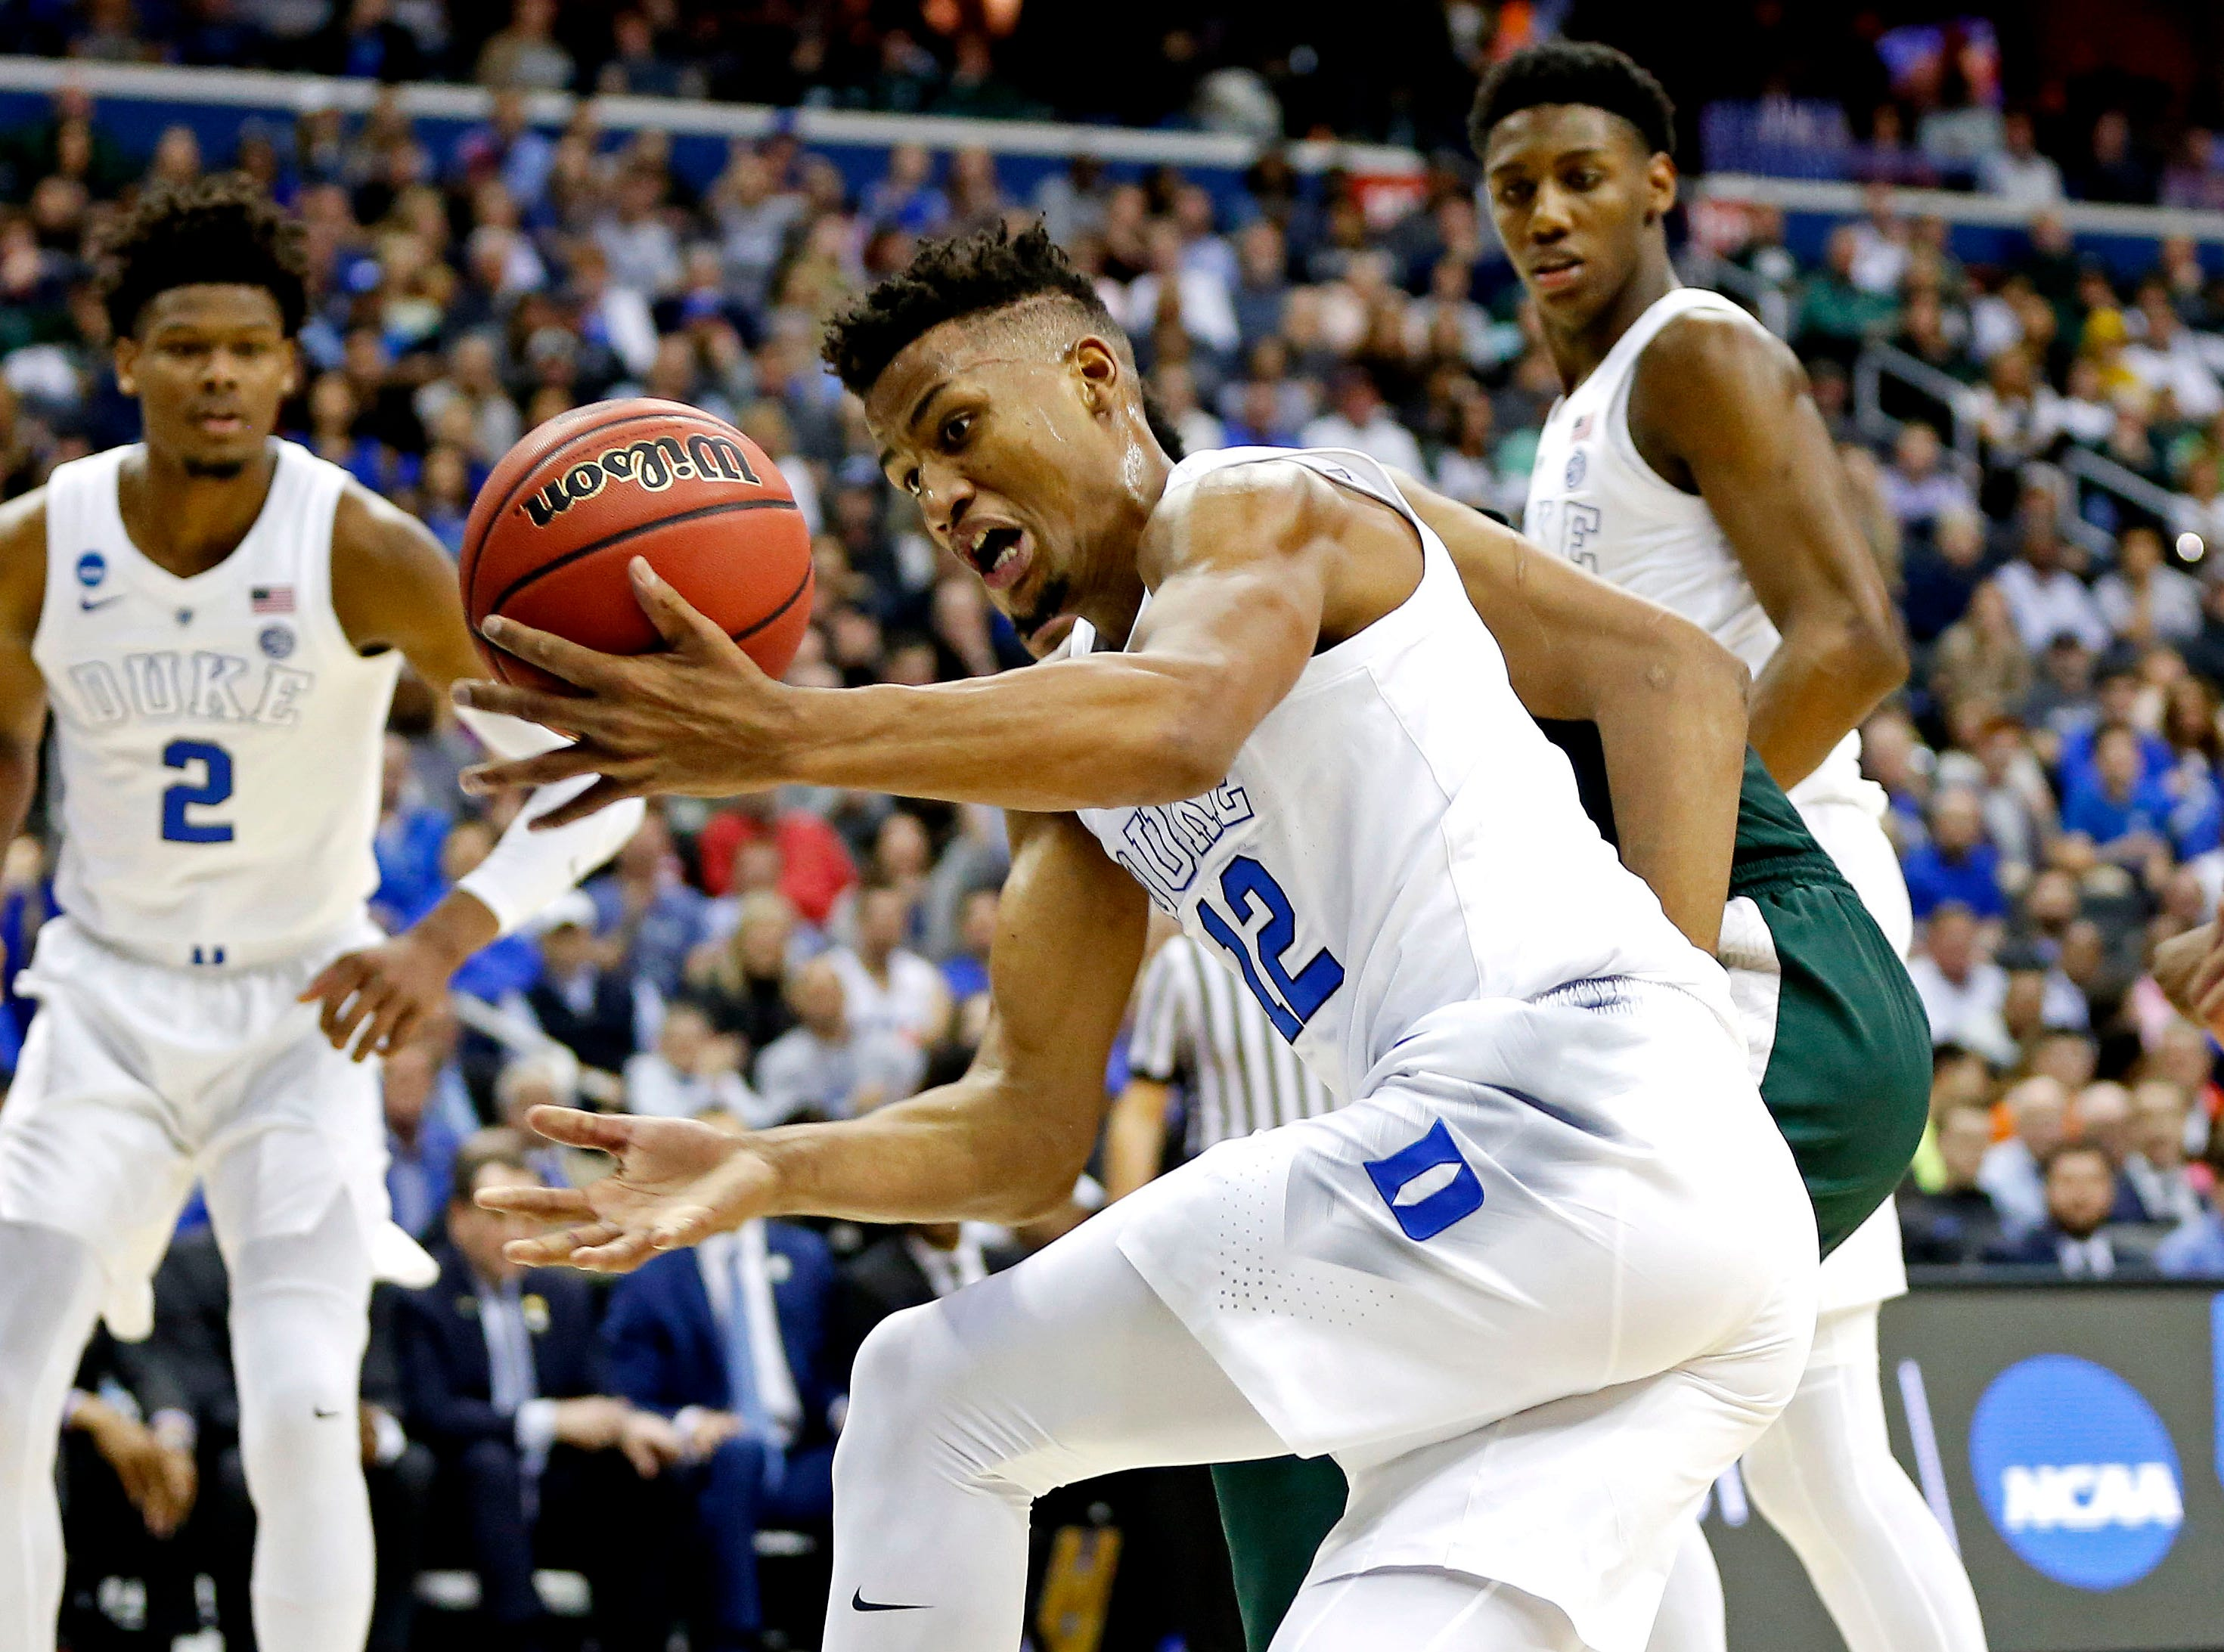 Mar 31, 2019; Washington, DC, USA; Duke Blue Devils forward Javin DeLaurier (12) goes for a loose ball against Michigan State Spartans forward Xavier Tillman (23) during the first half in the championship game of the east regional of the 2019 NCAA Tournament at Capital One Arena. Mandatory Credit: Amber Searls-USA TODAY Sports